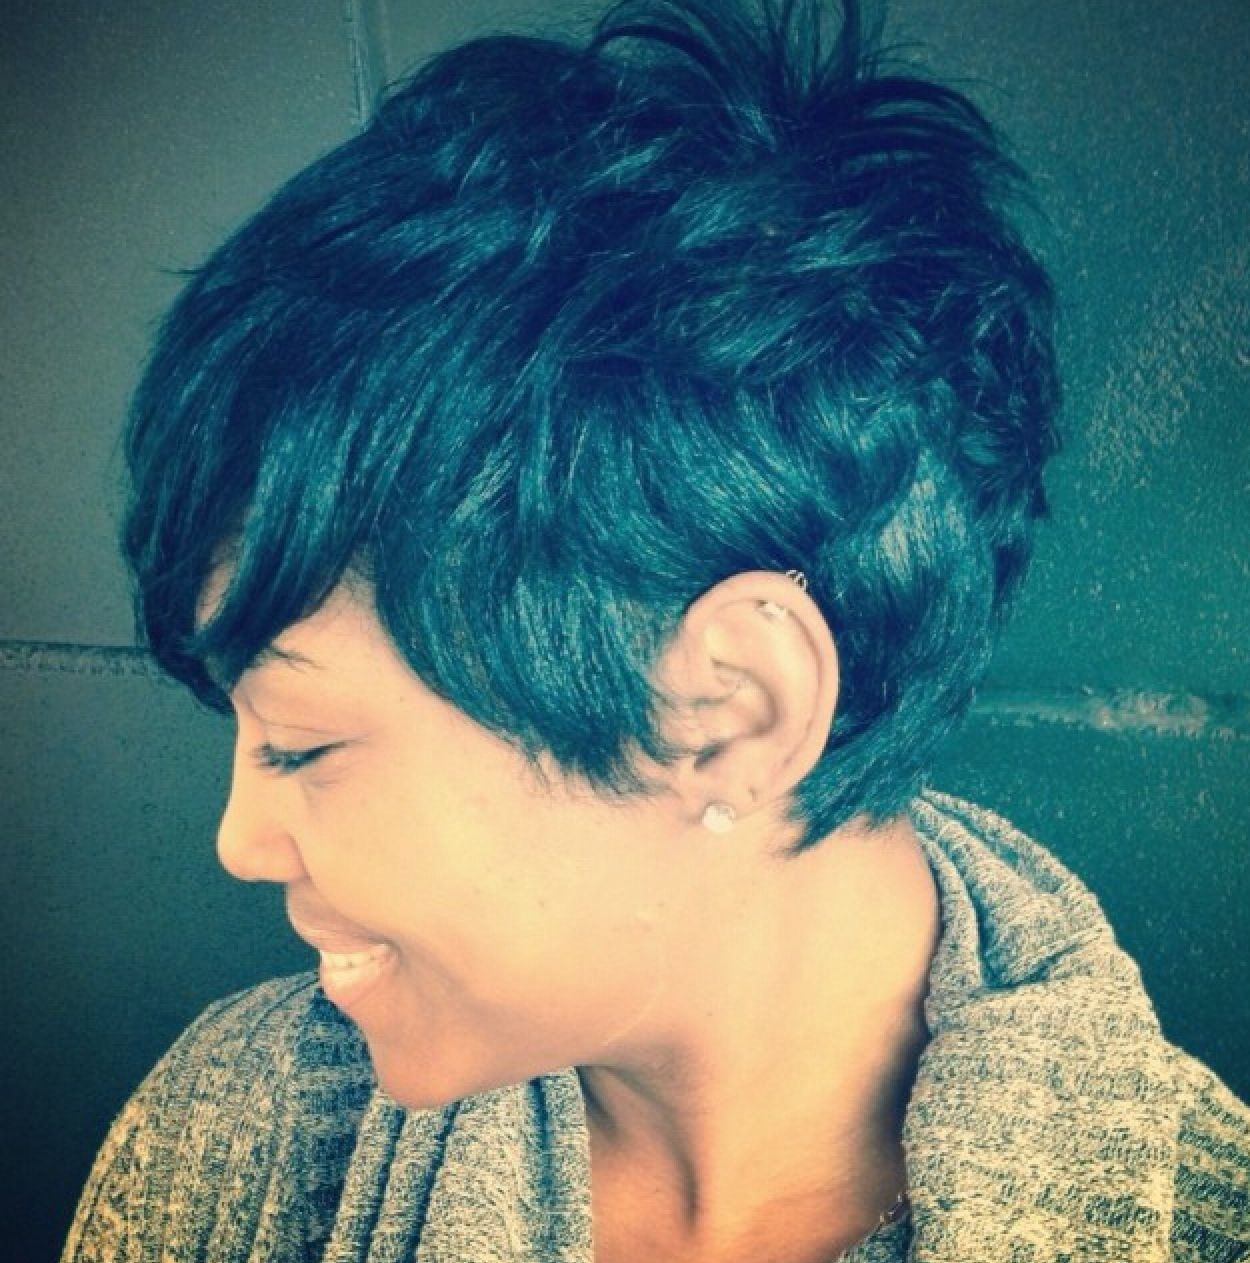 17 great hairstyles for black women | short hair, shorts and pixie cut